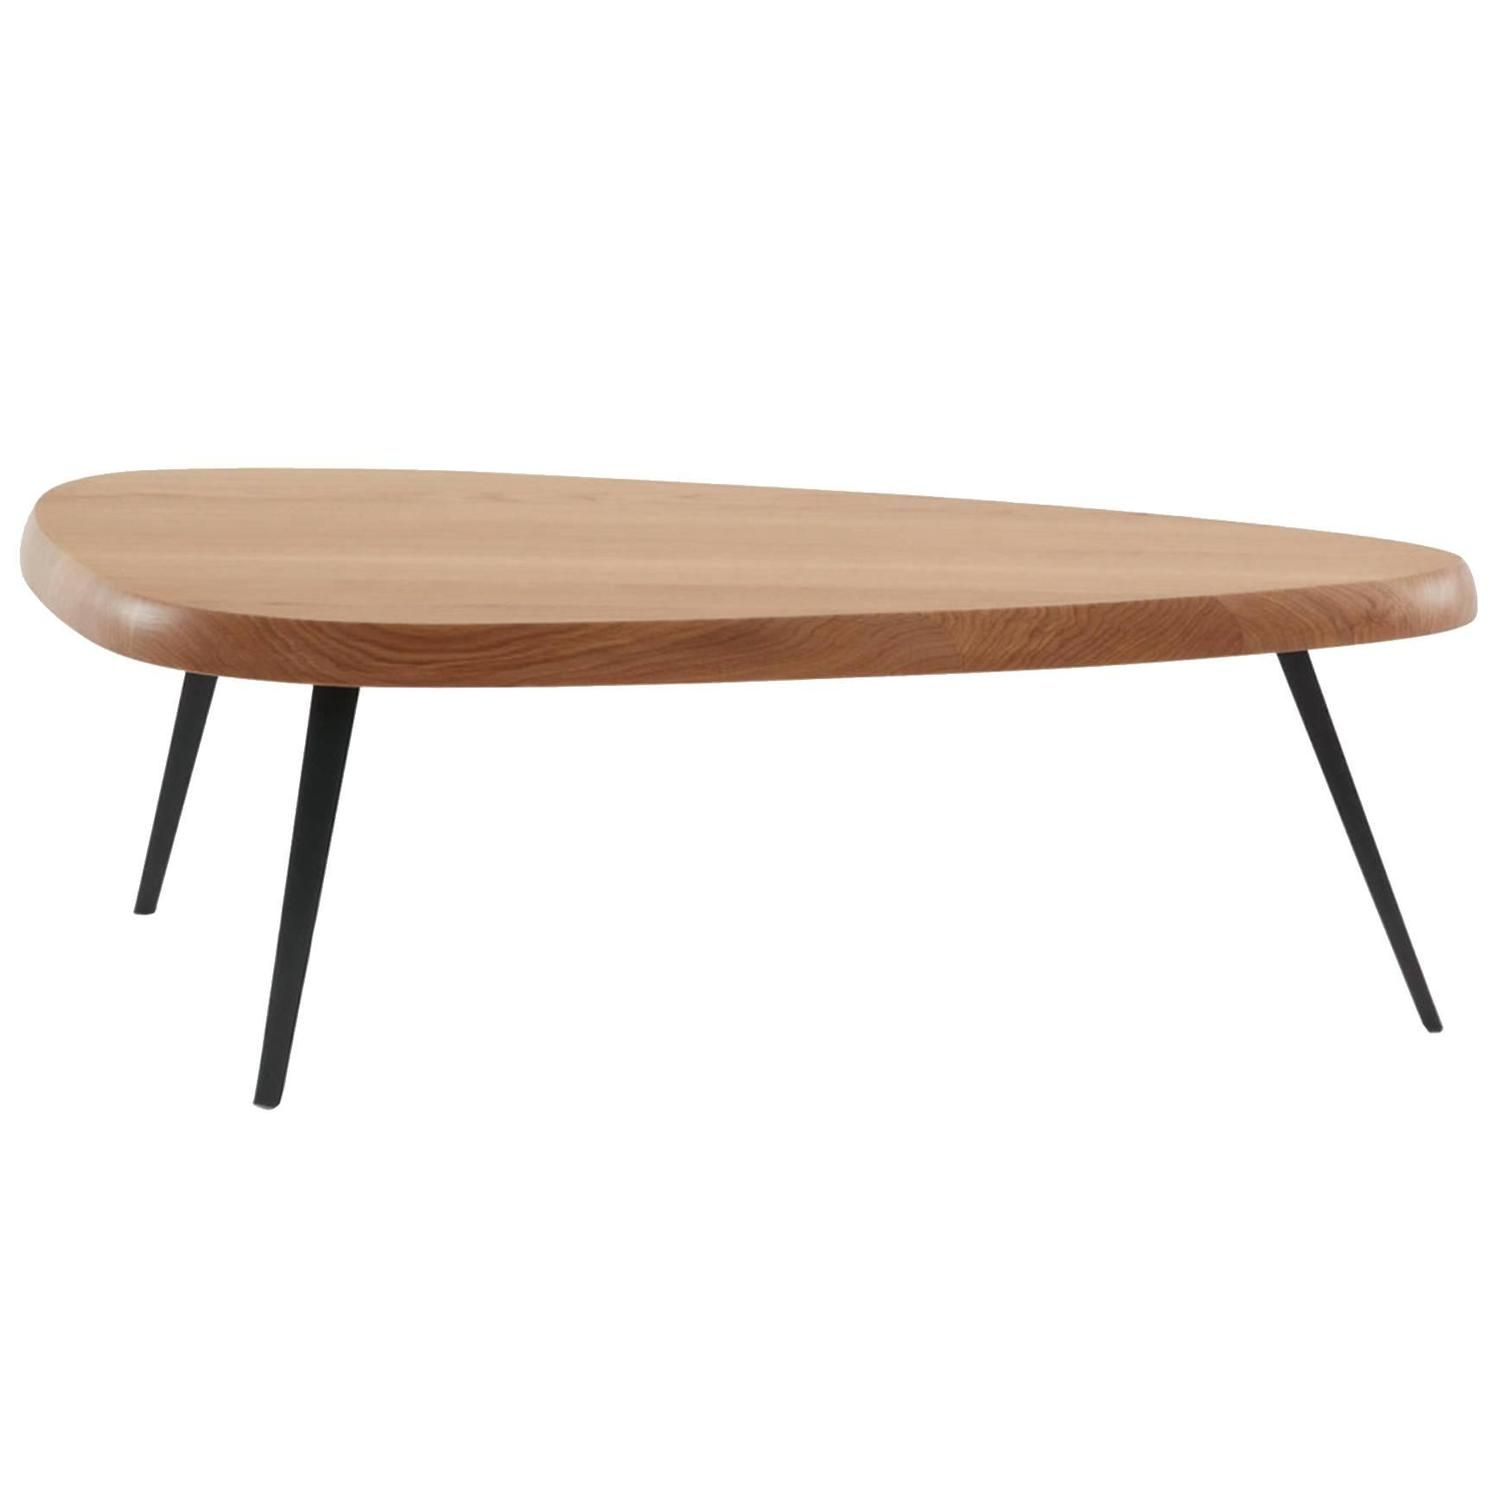 Low table by Charlotte Perriand for Cassina